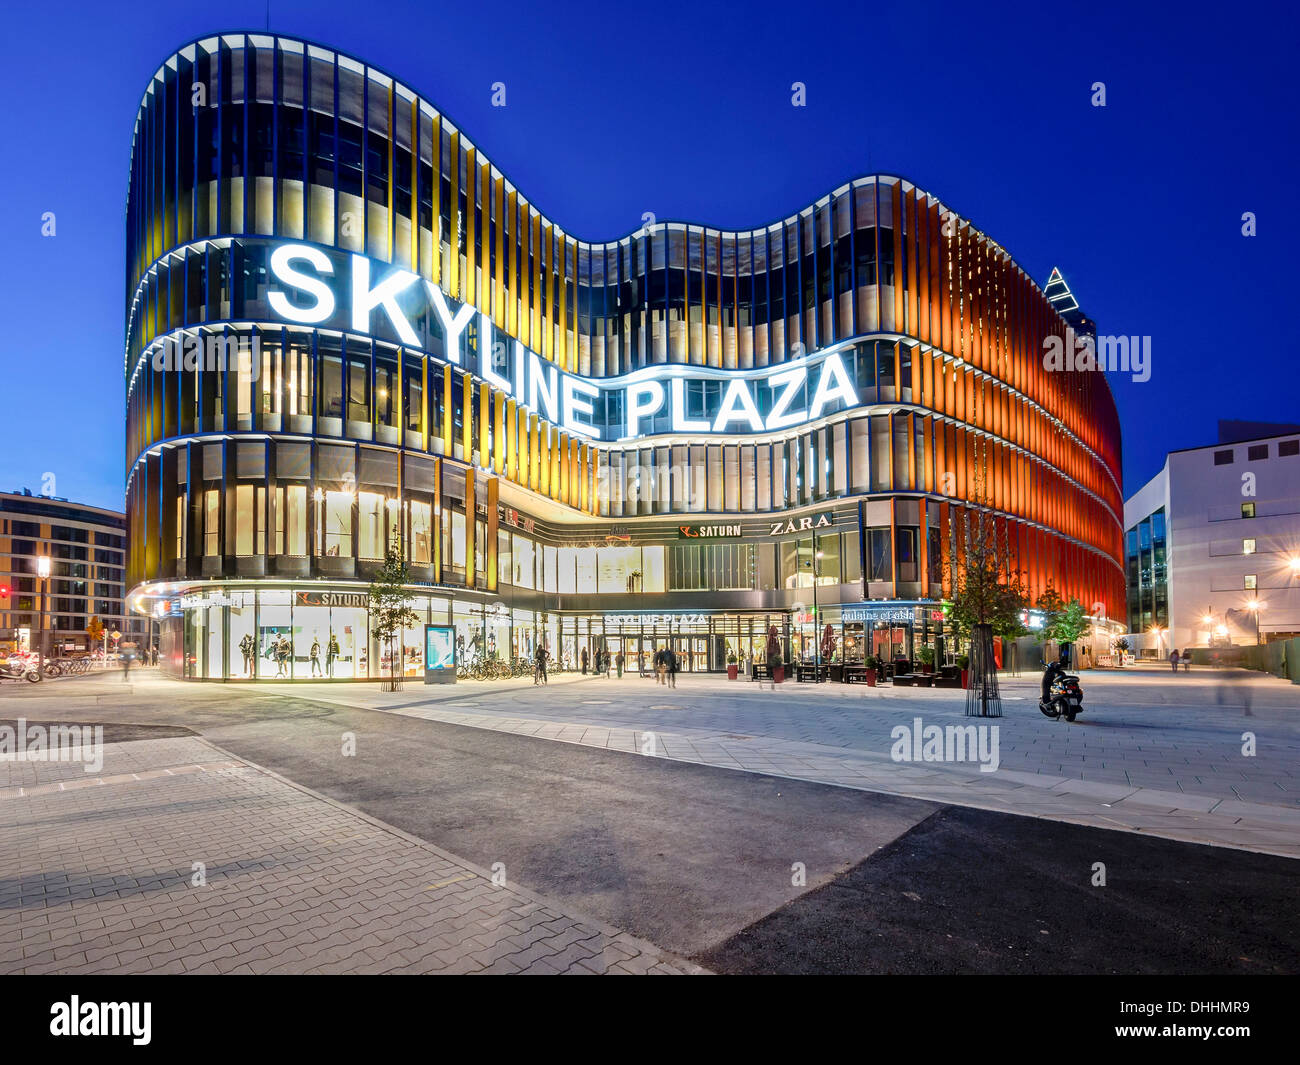 New shopping center Skyline Plaza, European Quarter